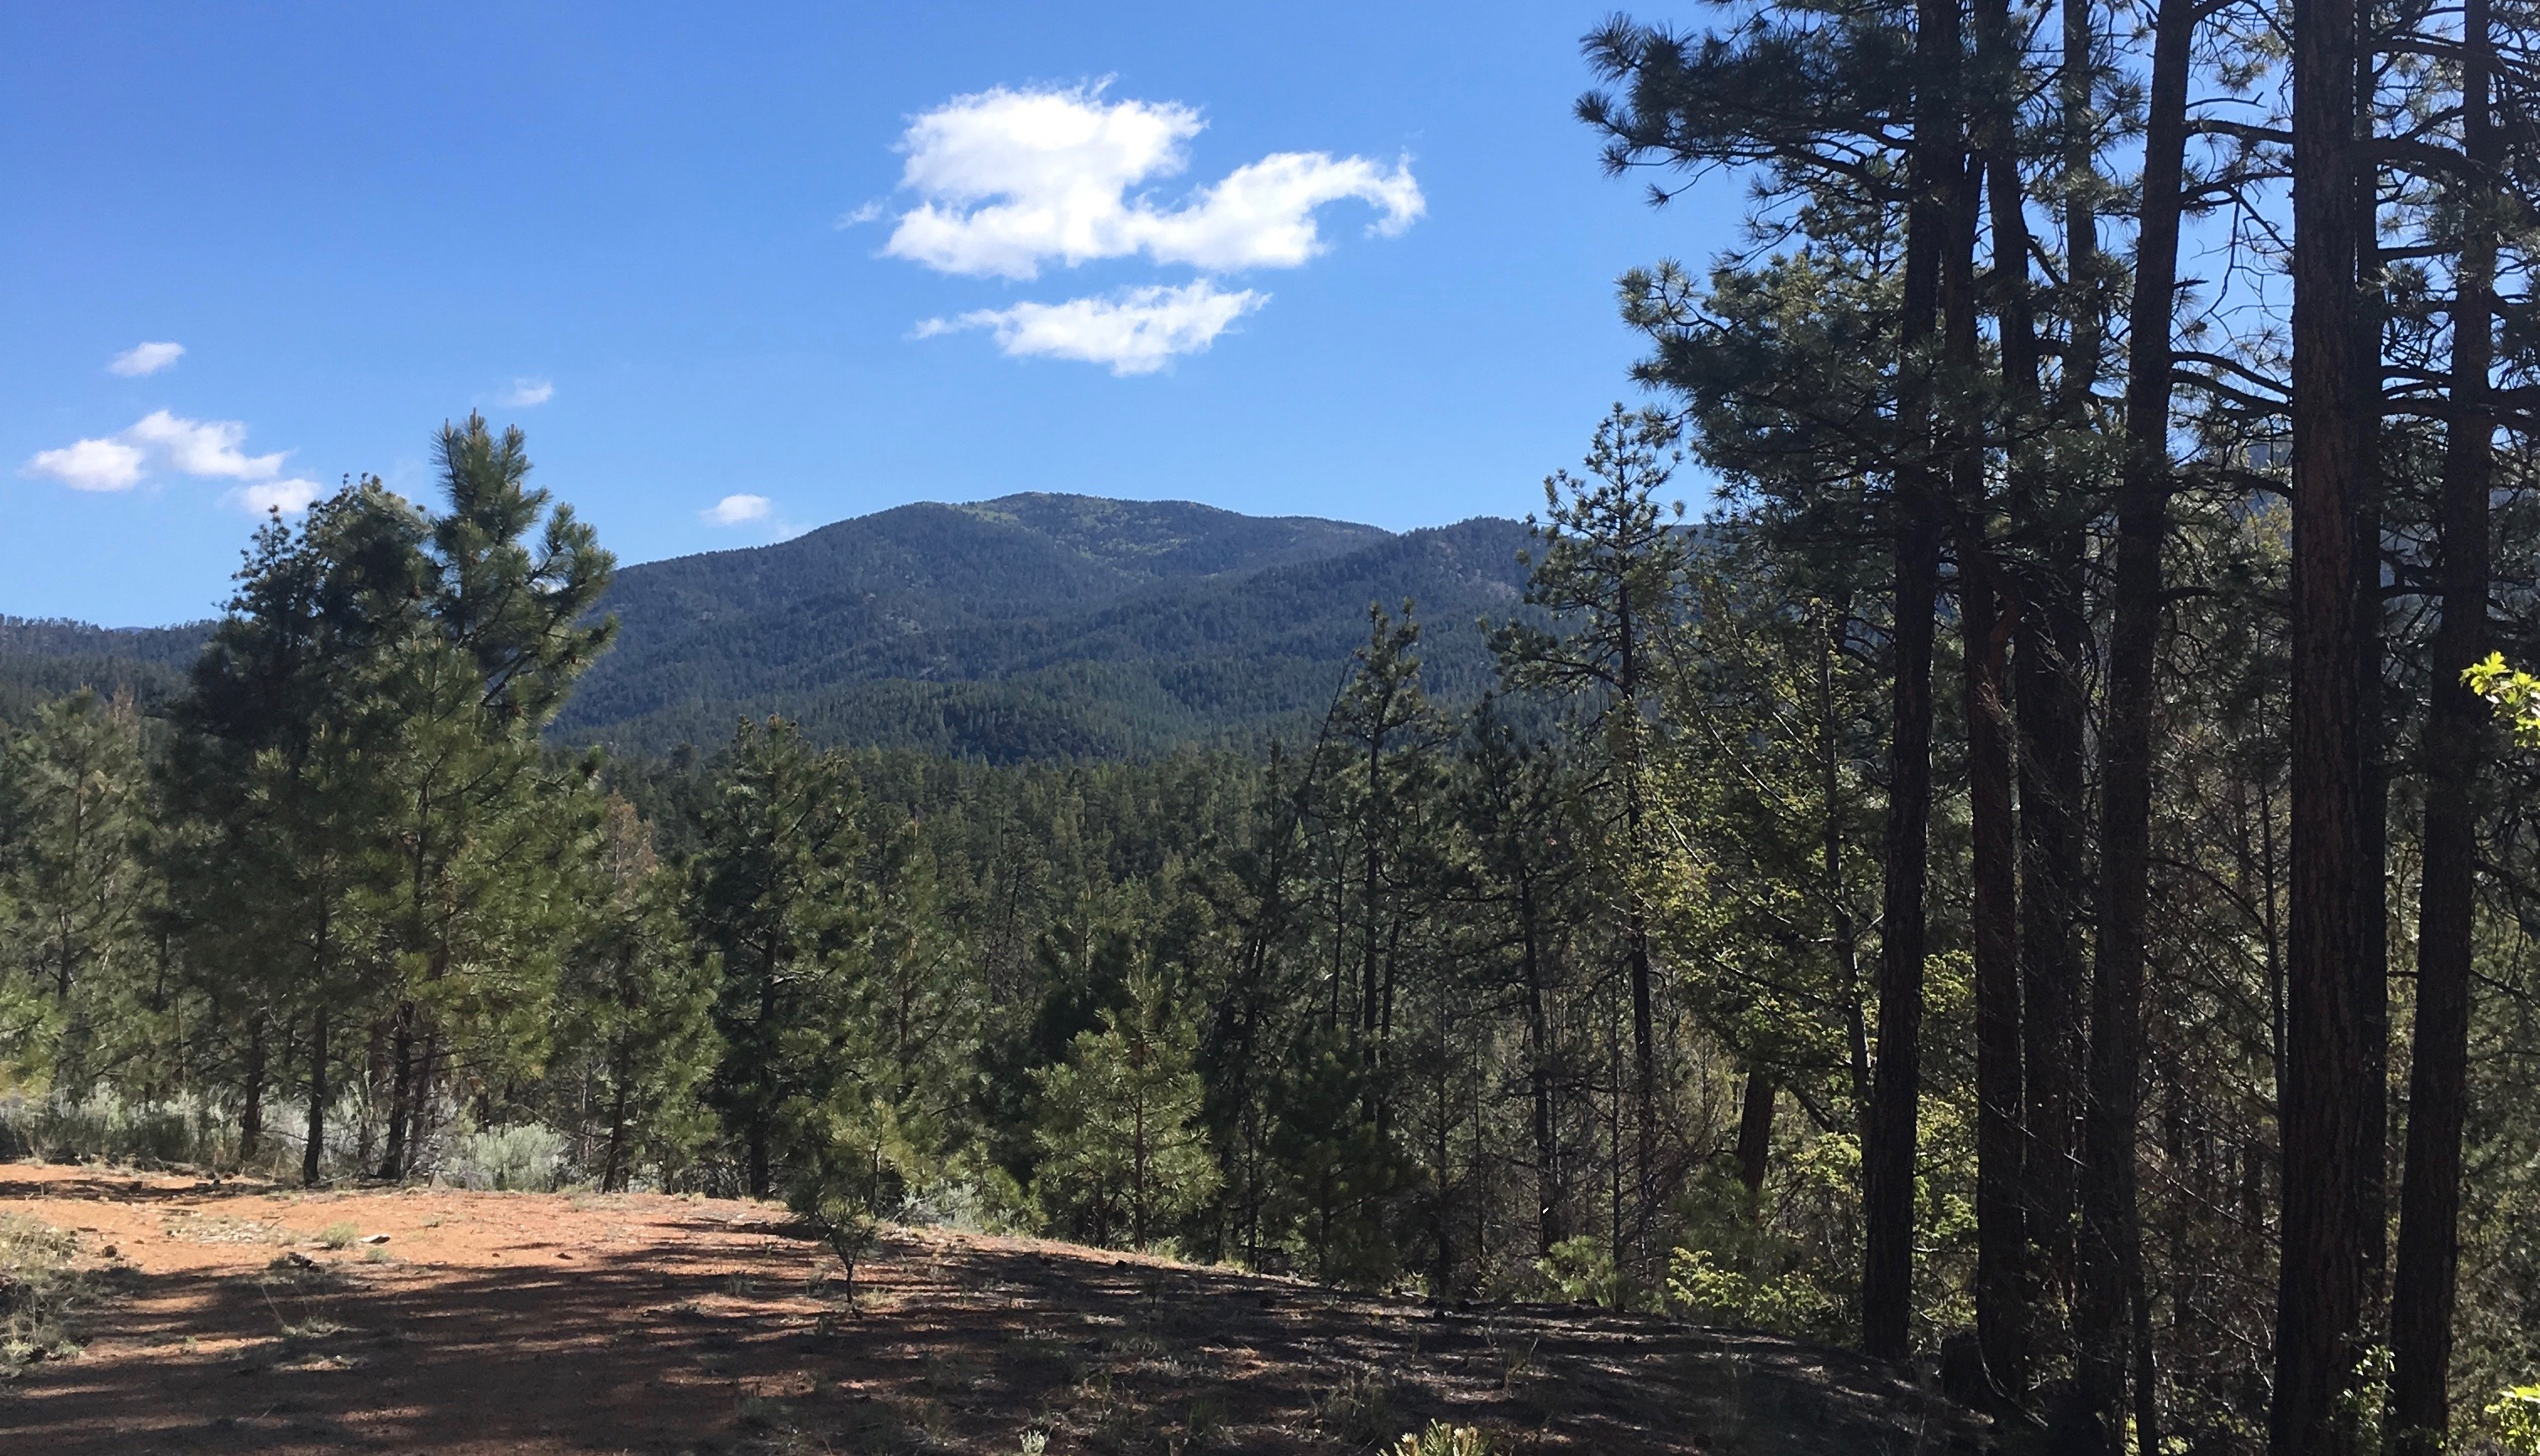 2017 05 28 Glorieta Baldy Santa Fe Mts New Mexico Meanders